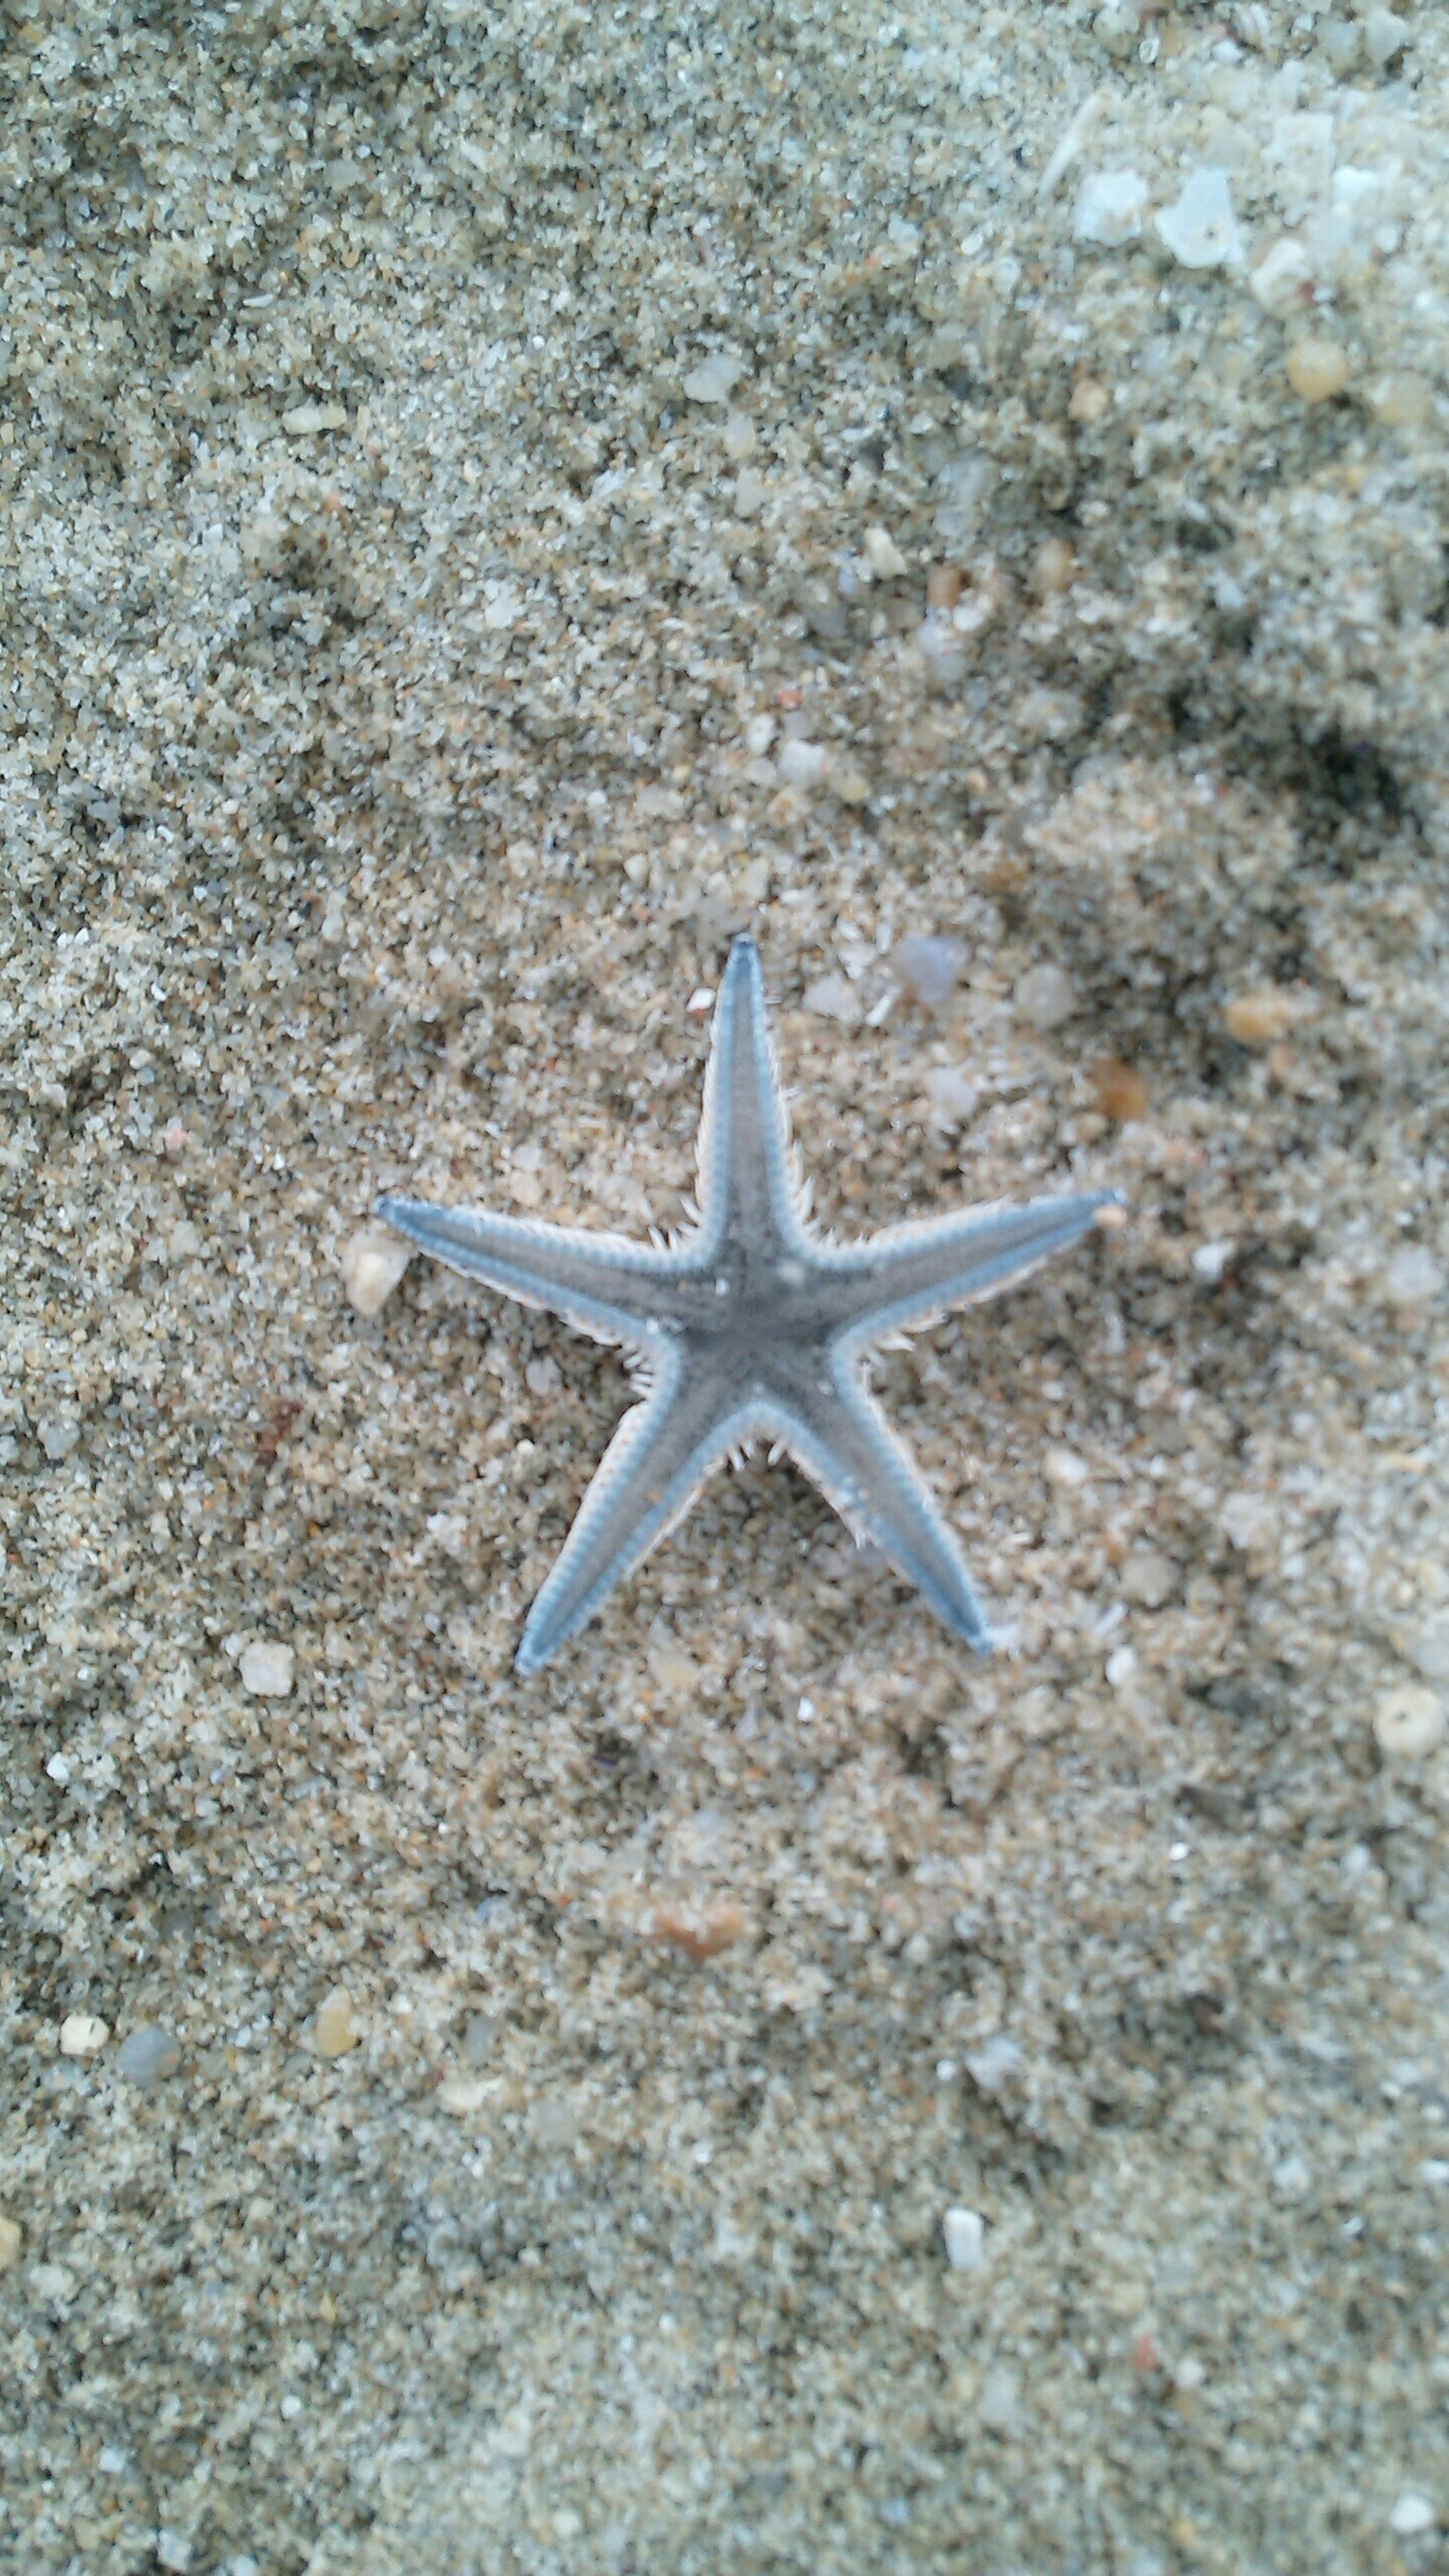 close-up, day, nature, no people, star shape, high angle view, outdoors, single object, textured, blue, shape, sunlight, white color, flying, pattern, still life, tranquility, art and craft, transportation, asphalt